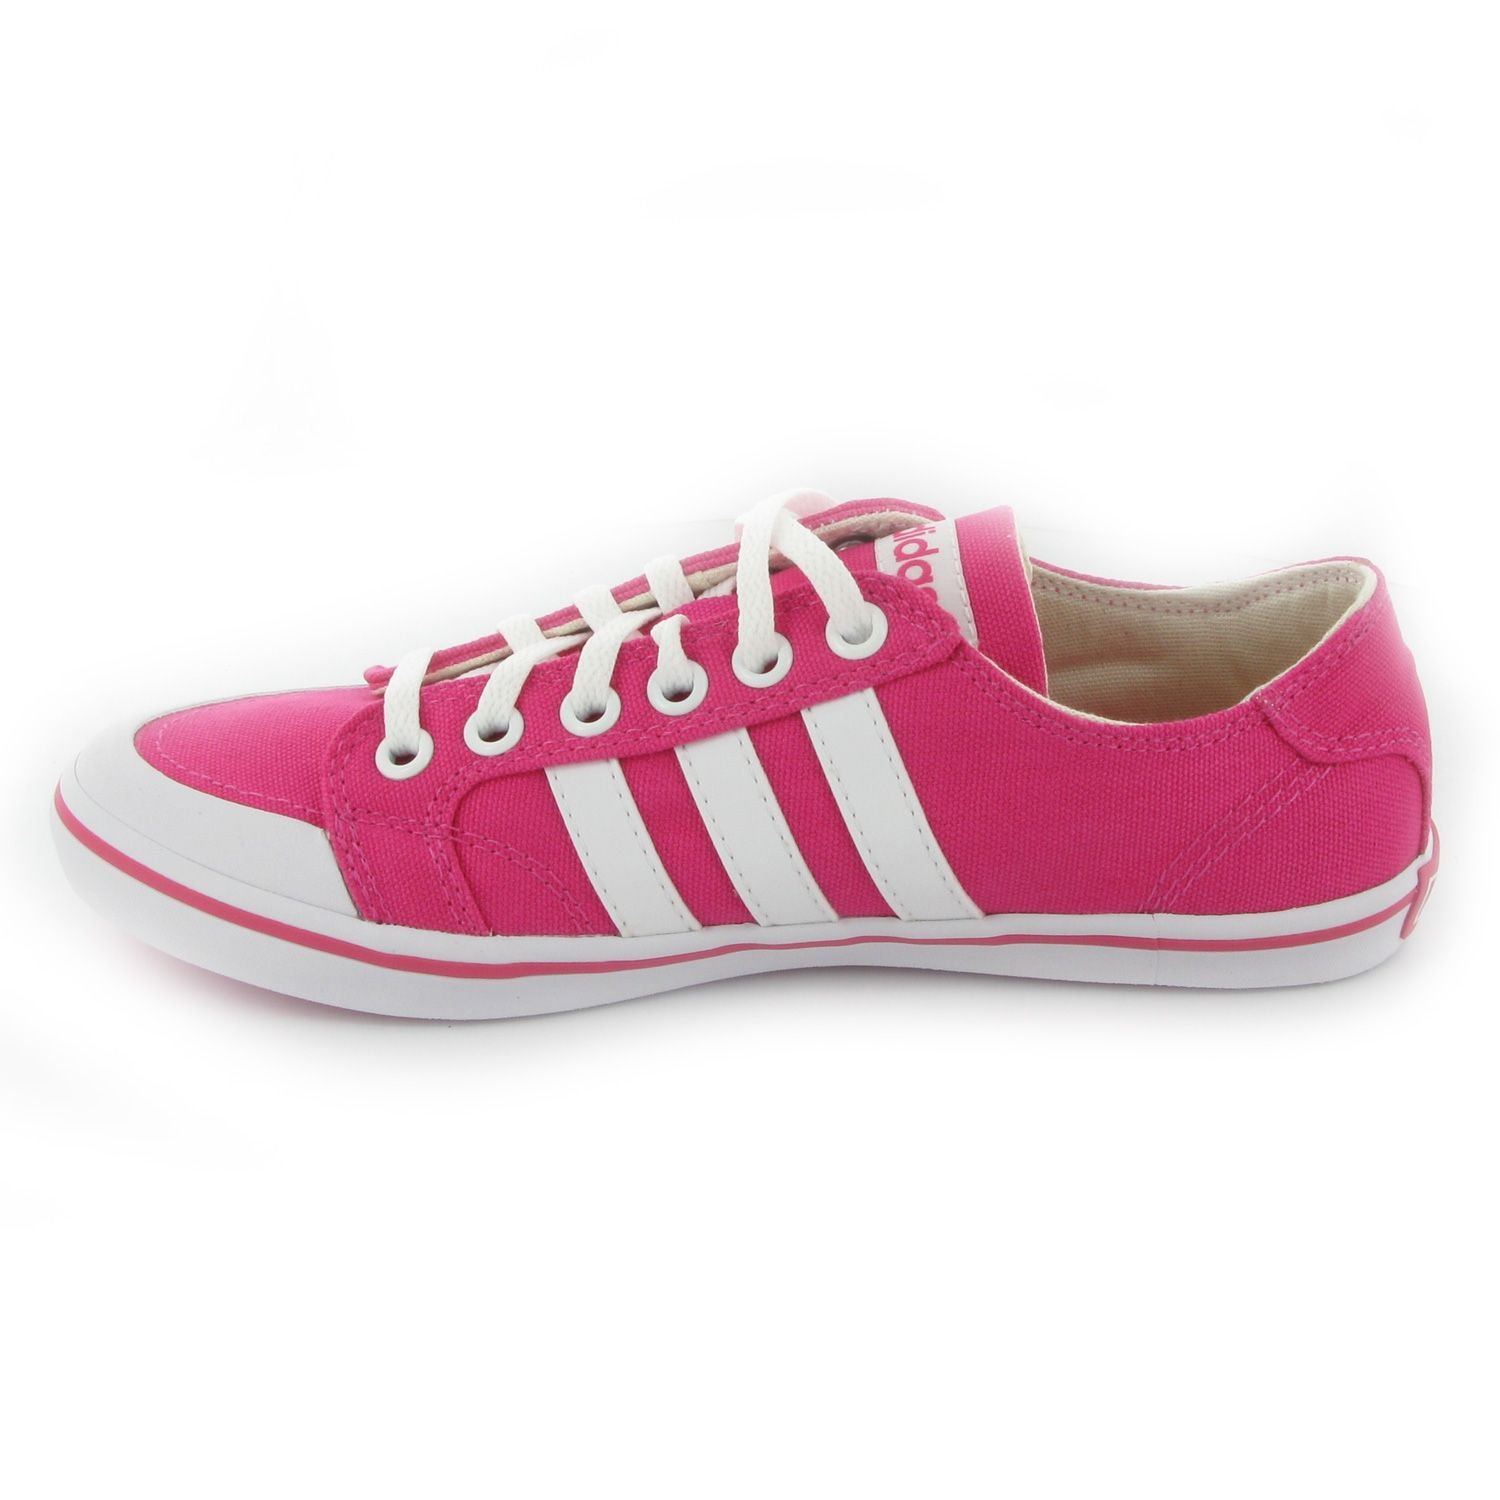 precios de remate incomparable fuerte embalaje adidas Clemente Lo Womens Trainers 7 Pink: Amazon.co.uk: Shoes & Bags